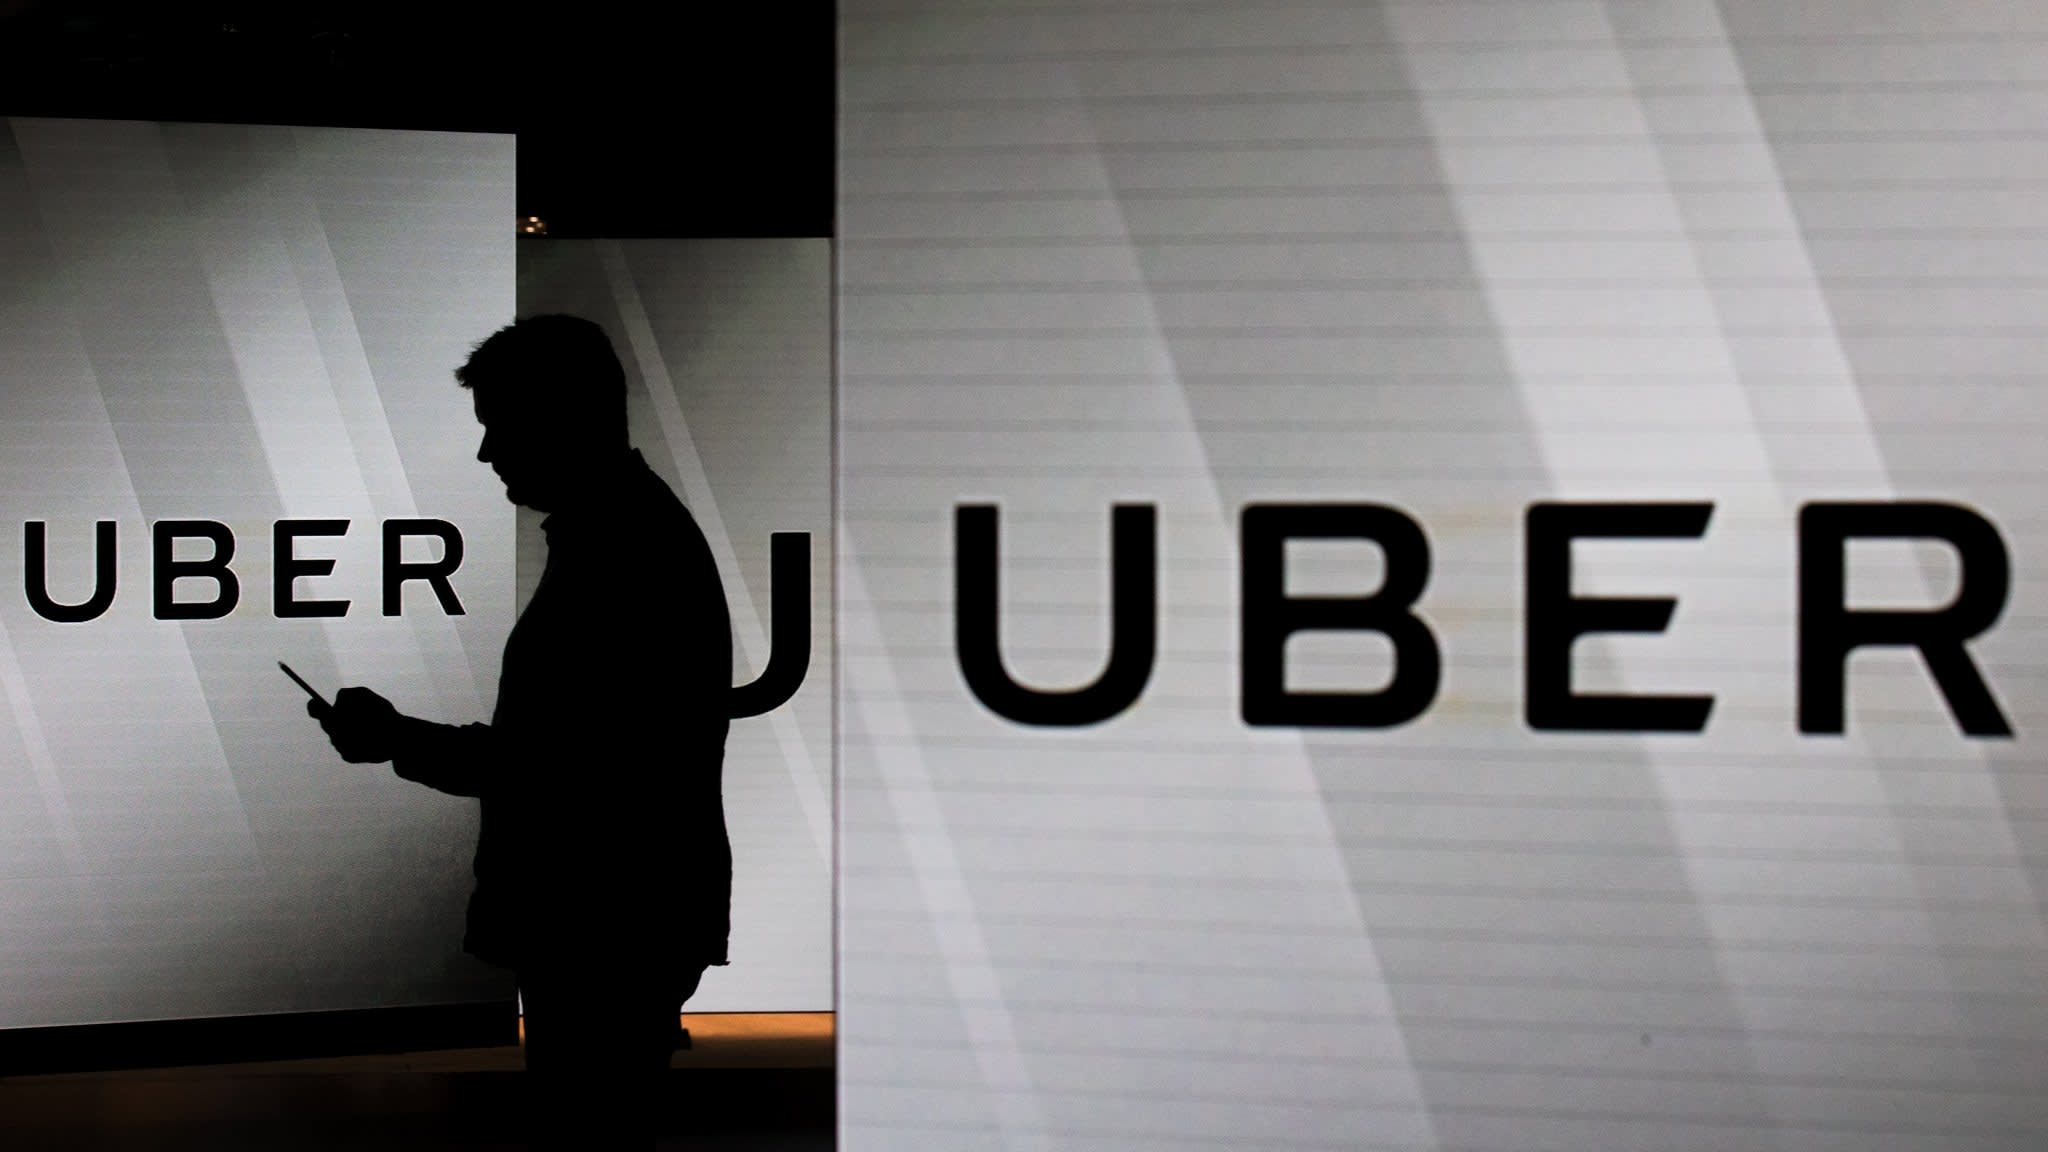 Uber targets £100bn valuation with IPO within 6 months